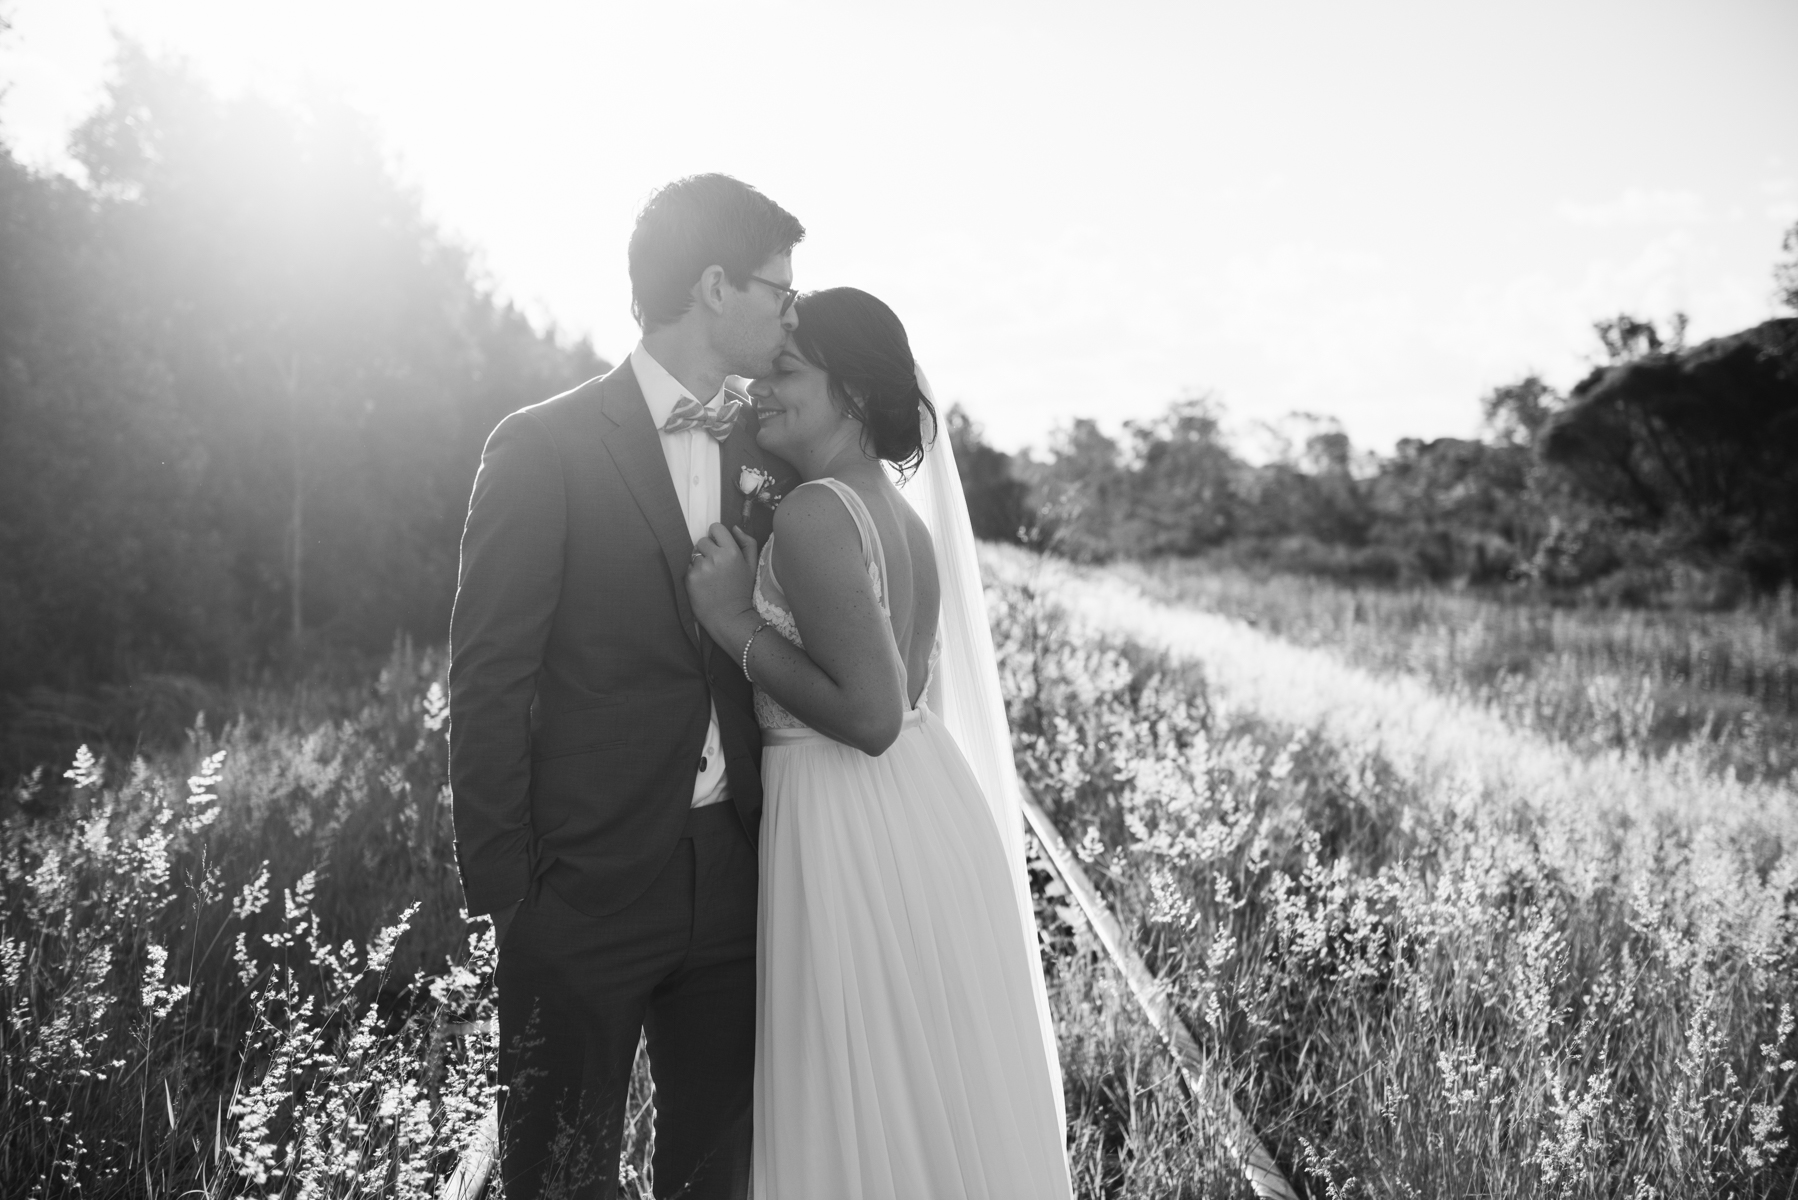 Skyla Sage photography | wedding photography